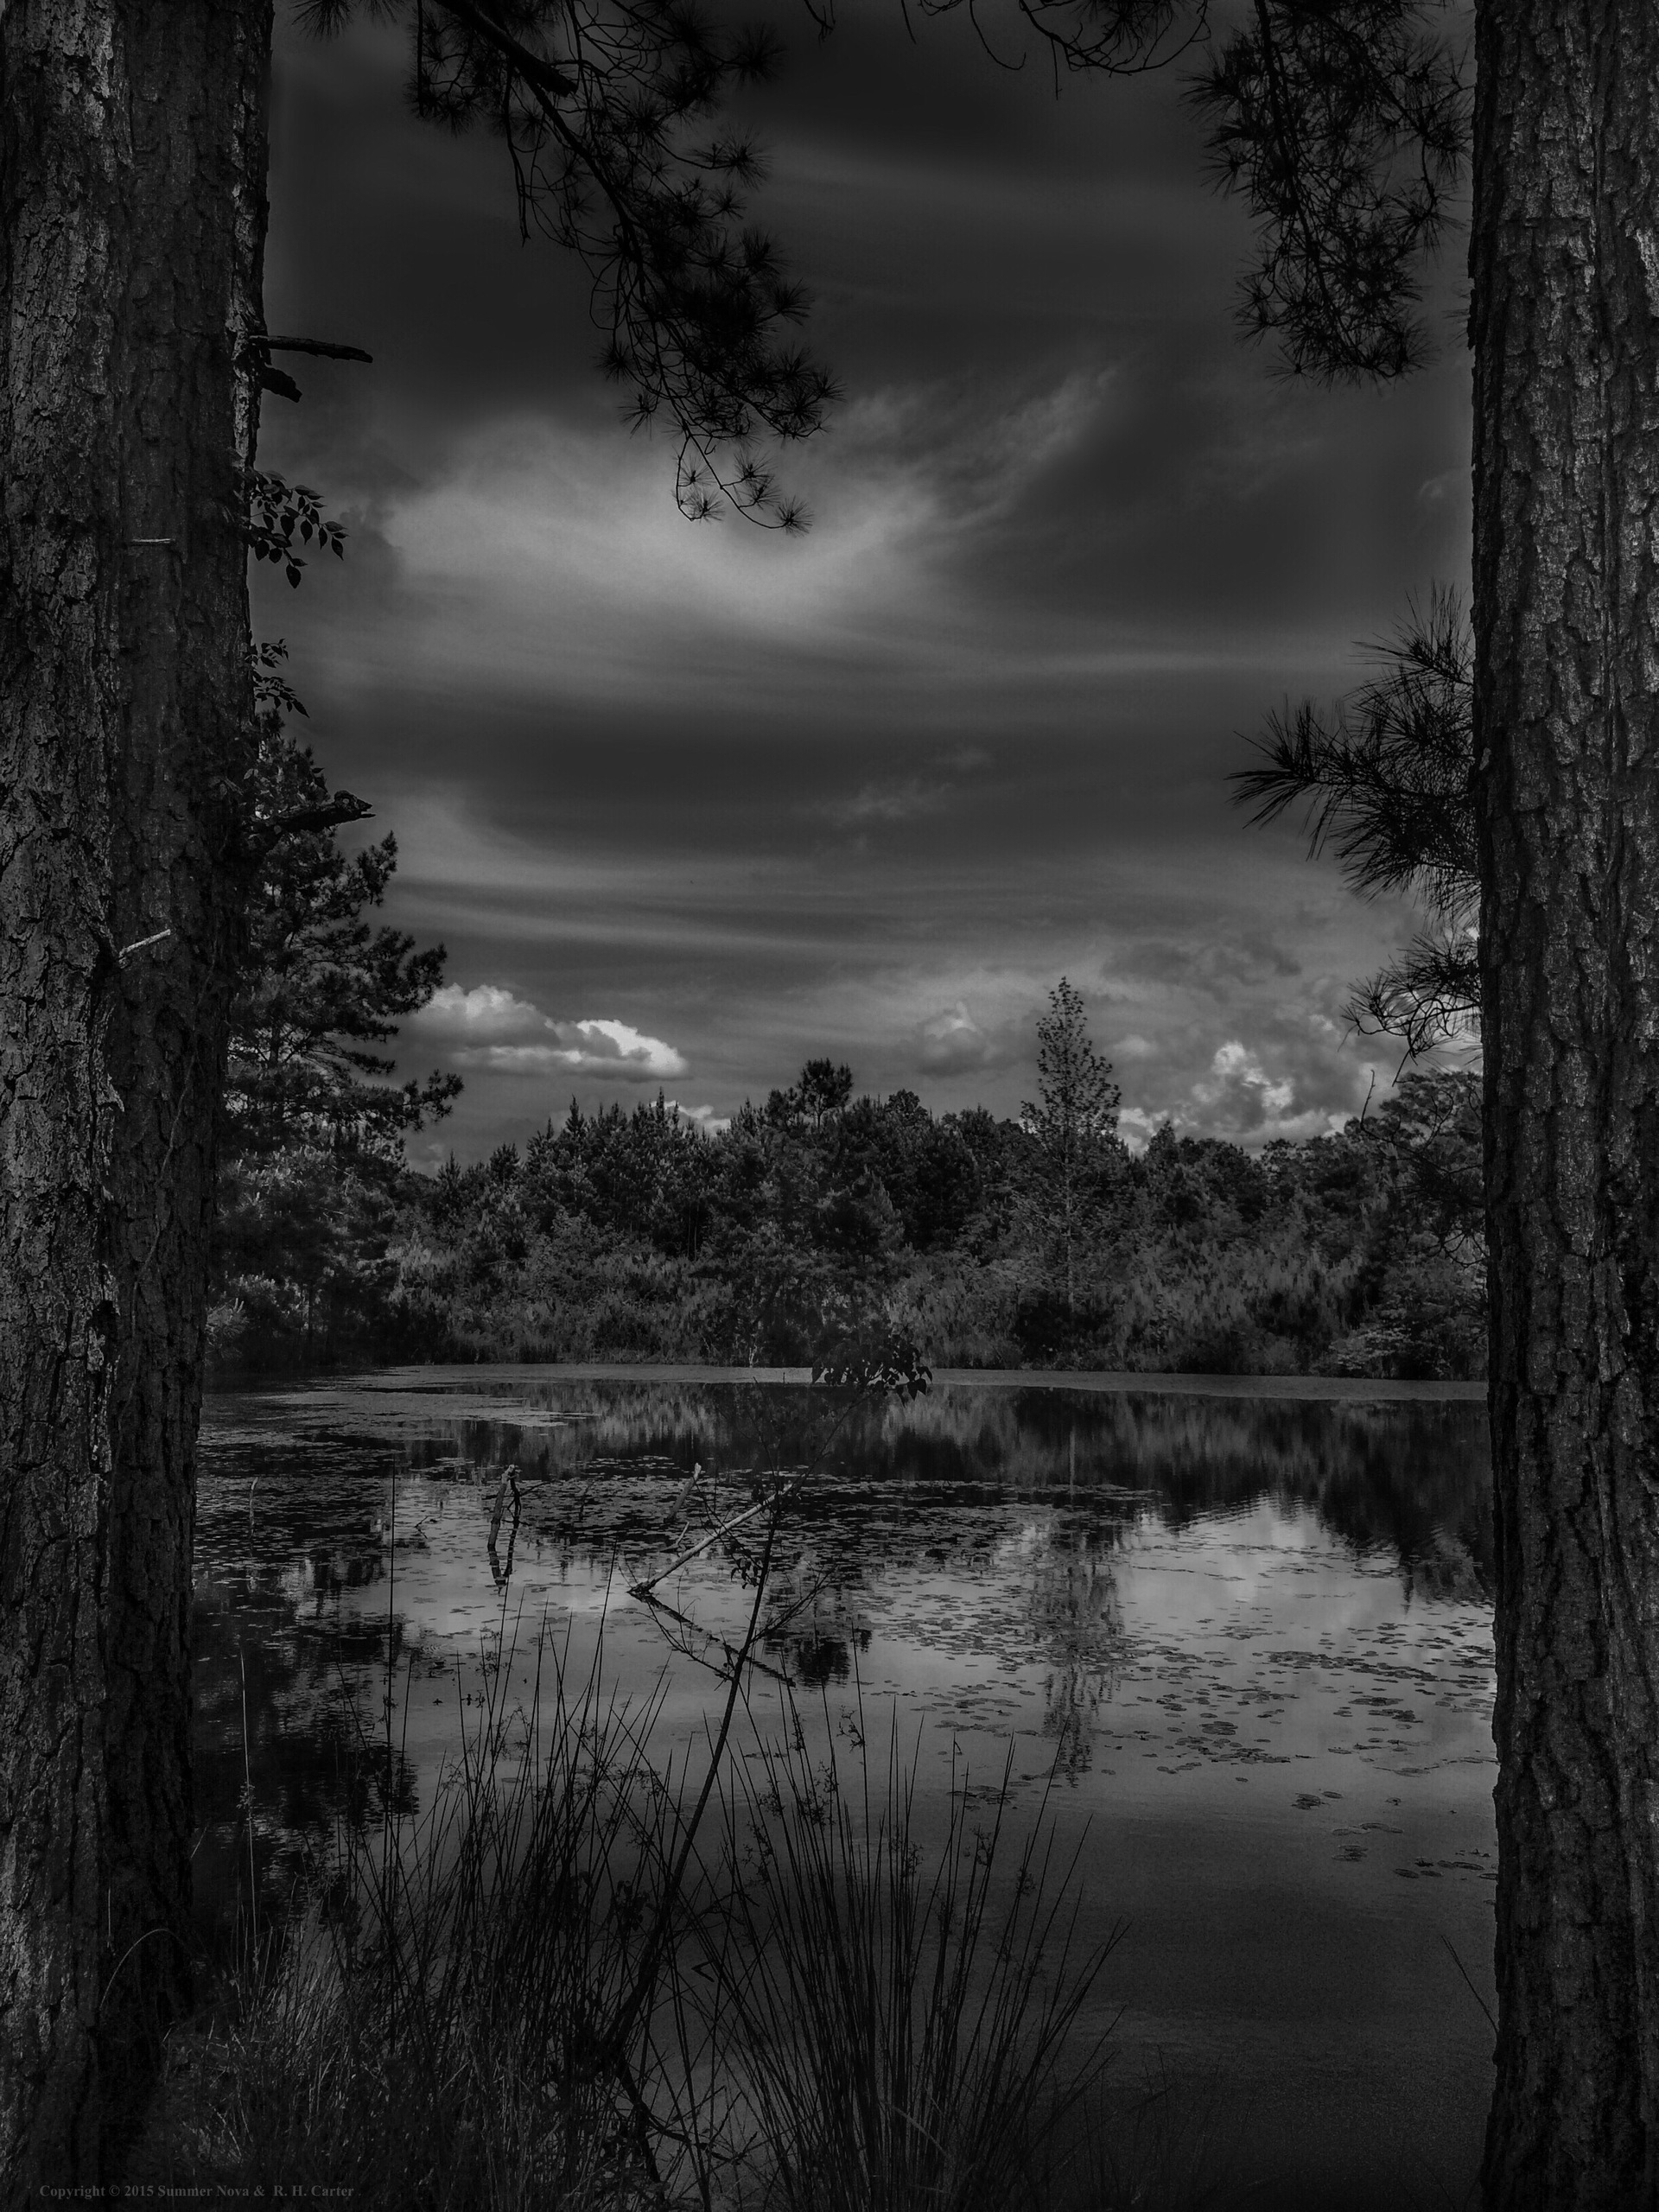 Afternoon Reflections. Afternoon Reflections | black and white, nature, outdoors, scenic